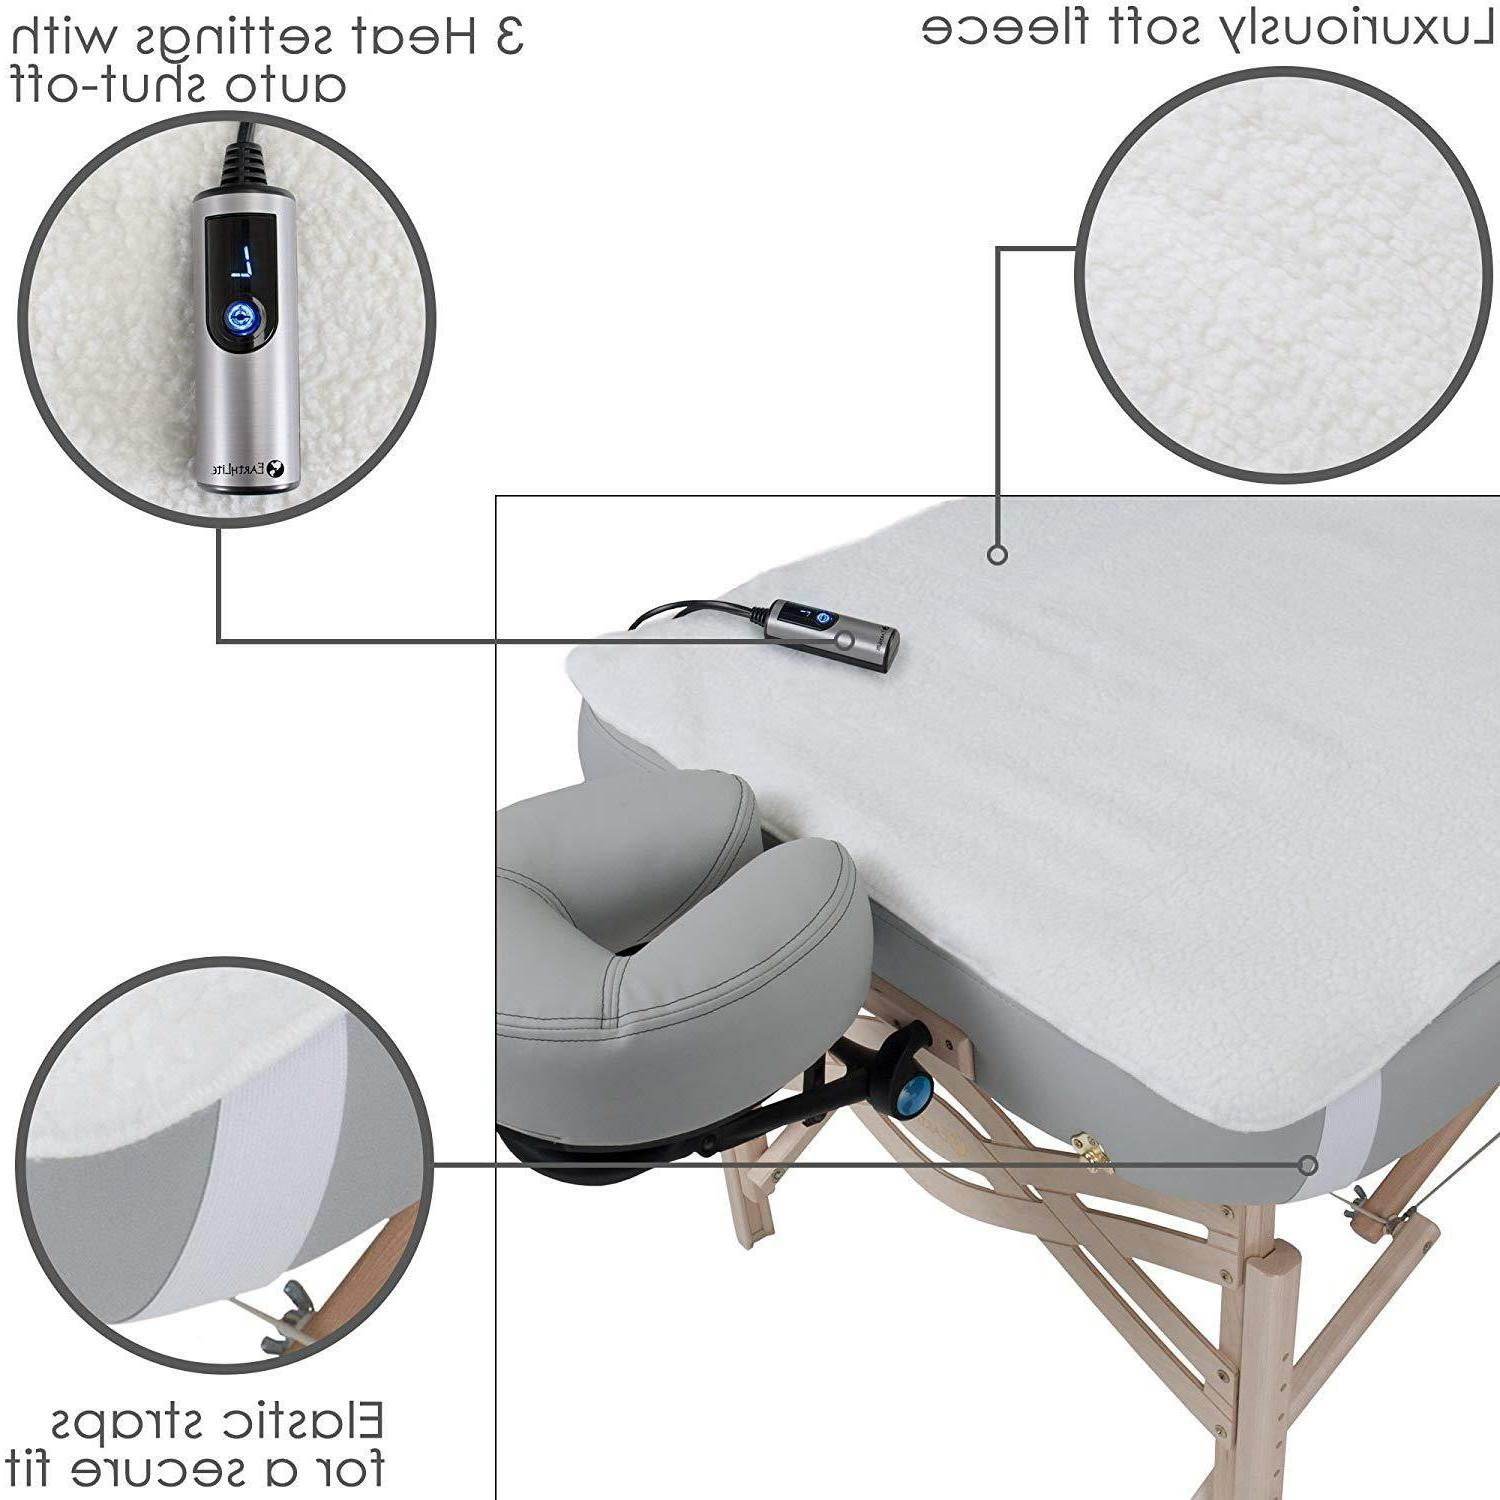 Fleece Massage Table Warmer Dual Settings 13ft Cord